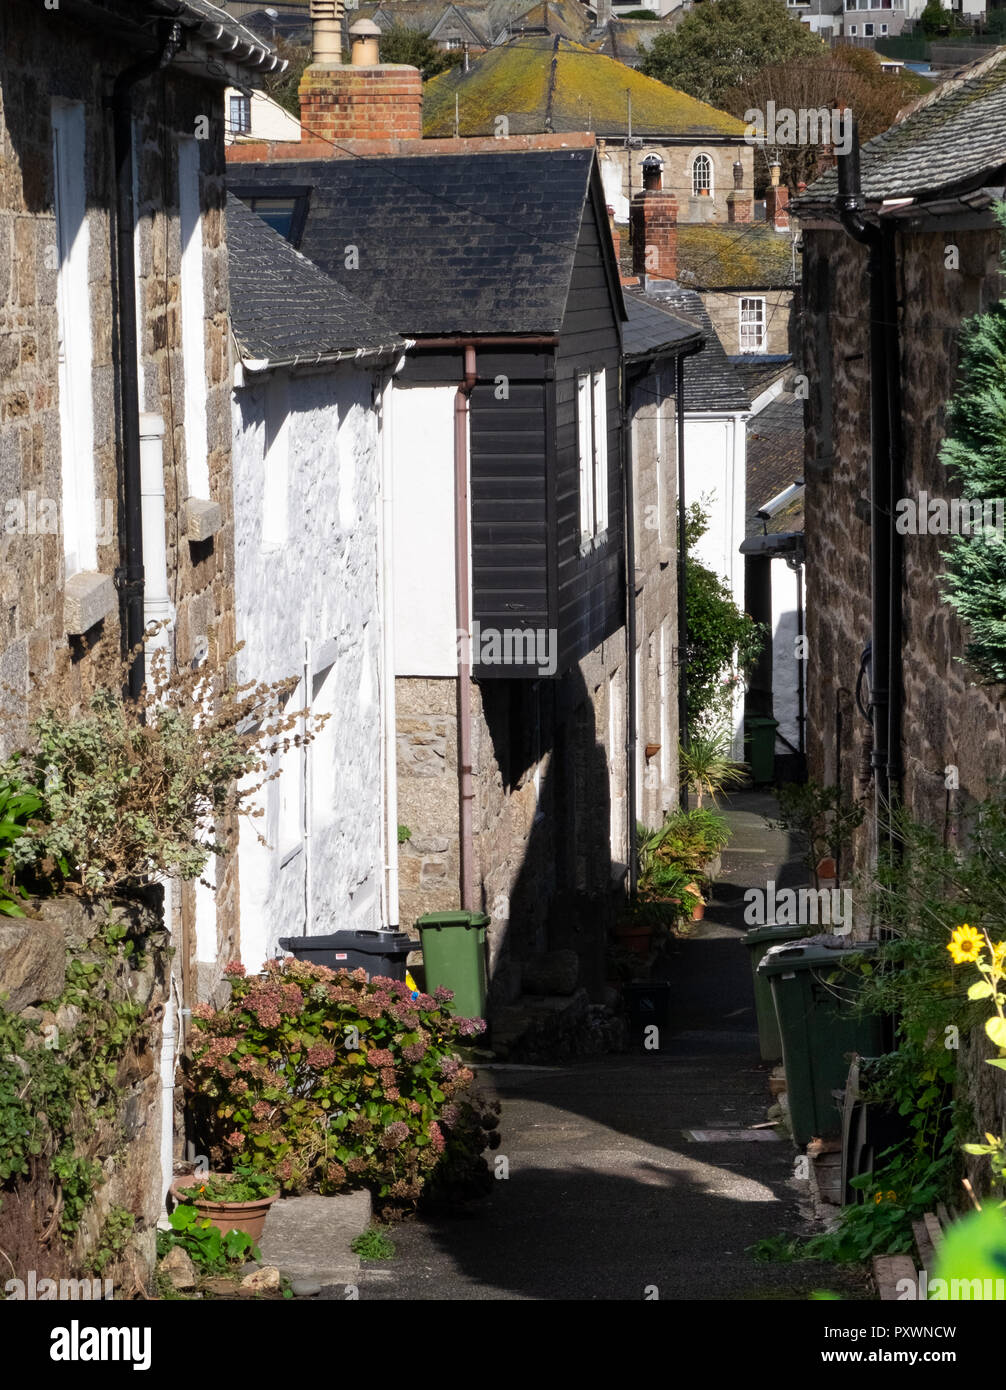 View from above of a very narrow street of terraced traditional village cottages in Mousehole, Cornwall. Green dustbins have to be out on the street. - Stock Image